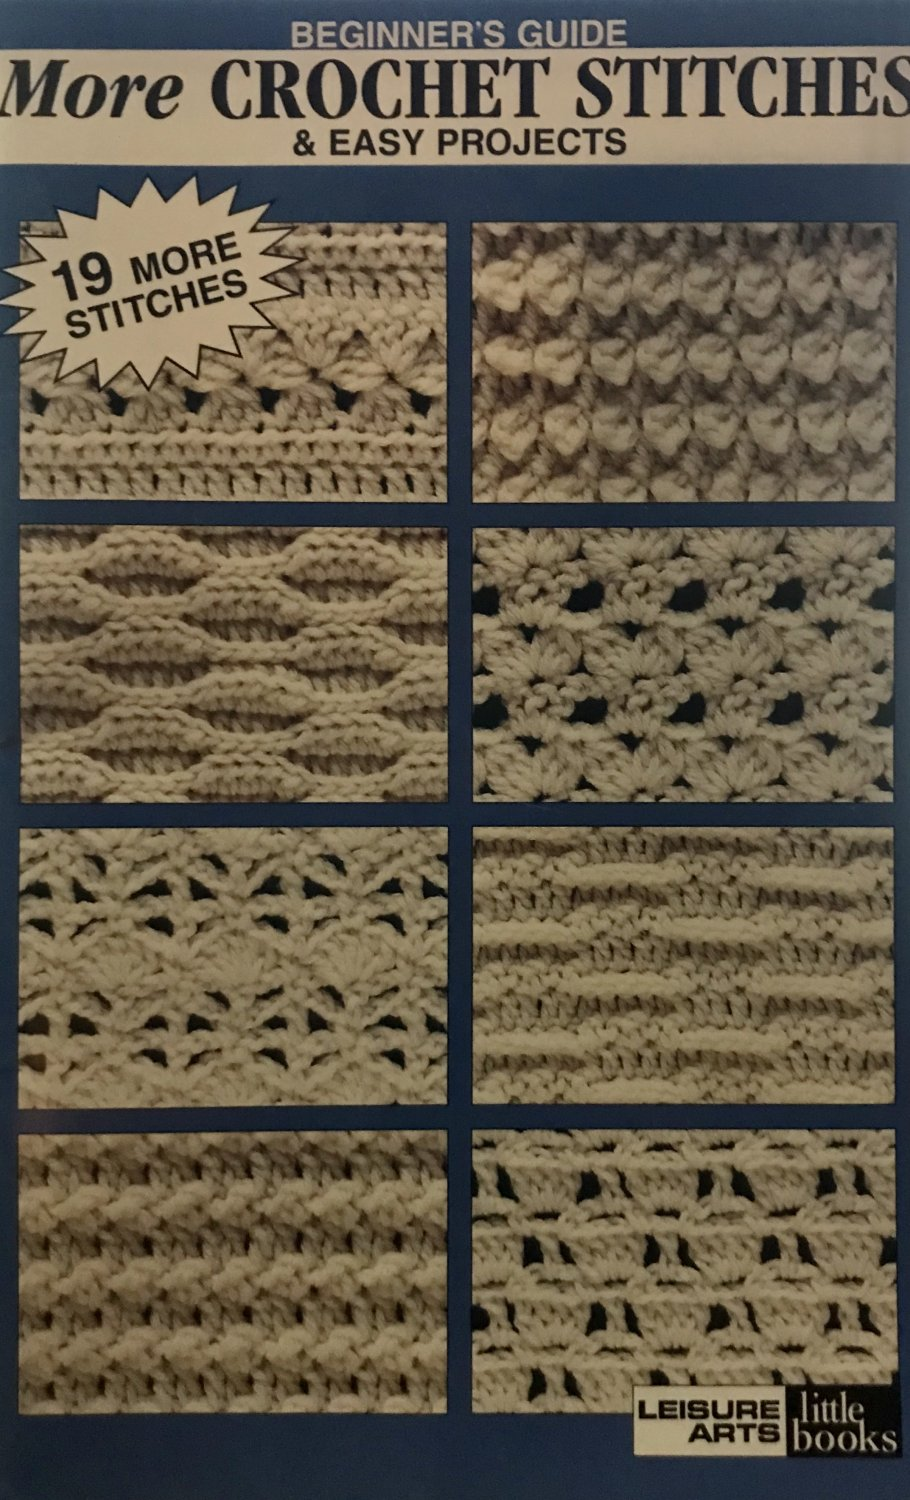 More Crochet Stitches & Easy Projects Leisure Arts Little Book 75033